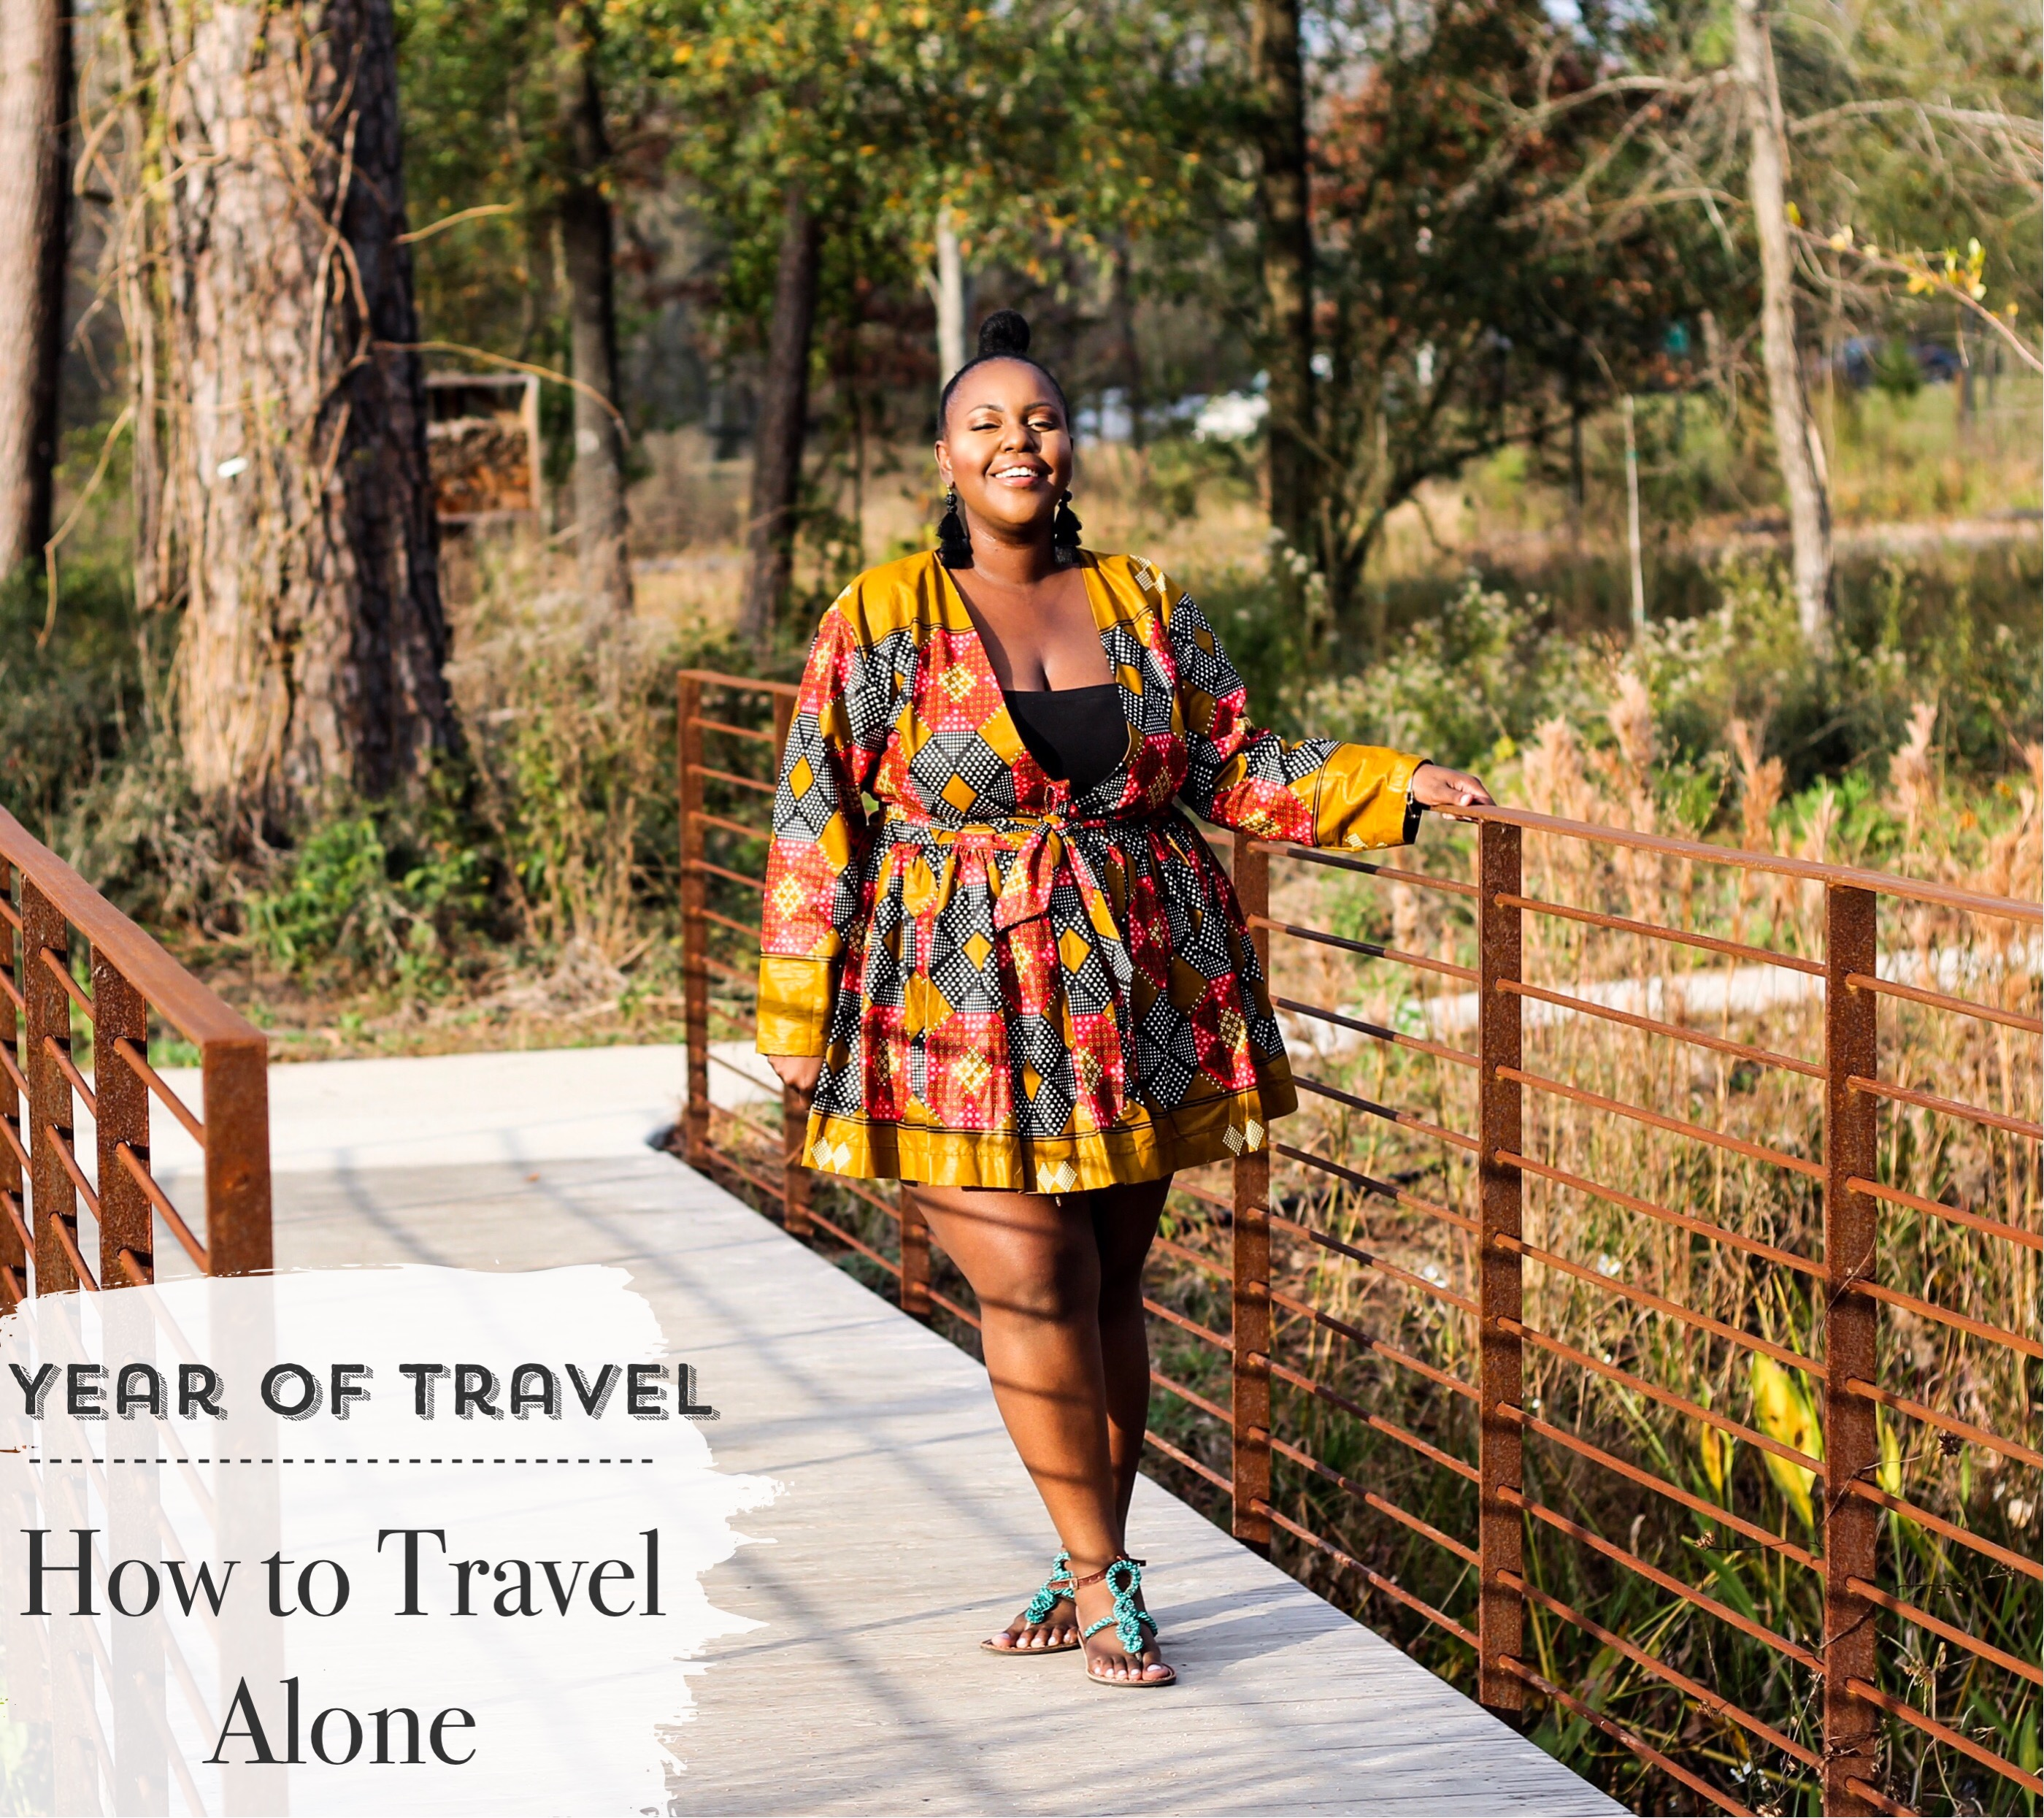 preppy plus size fashion blogs 2017, beautiful curvy girls, how to fill the eye brow of a dark skin, beautiful plus size dark skin girls, plus size black bloggers, clothes for curvy girls, curvy girl fashion clothing, plus blog, plus size fashion tips, plus size women blog, curvy women fashion, plus blog, curvy girl fashion blog, style plus curves, plus size fashion instagram, curvy girl blog, bbw blog, plus size street fashion, plus size beauty blog, plus size fashion ideas, curvy girl summer outfits, plus size fashion magazine, plus fashion bloggers, zara, Rosie the riveter shirt; Emilia embroidered beaded clutch; Vince Camuto heels; Lula shell drop earrings; Aldo Galigossi sunnies, tenge collection, ankara